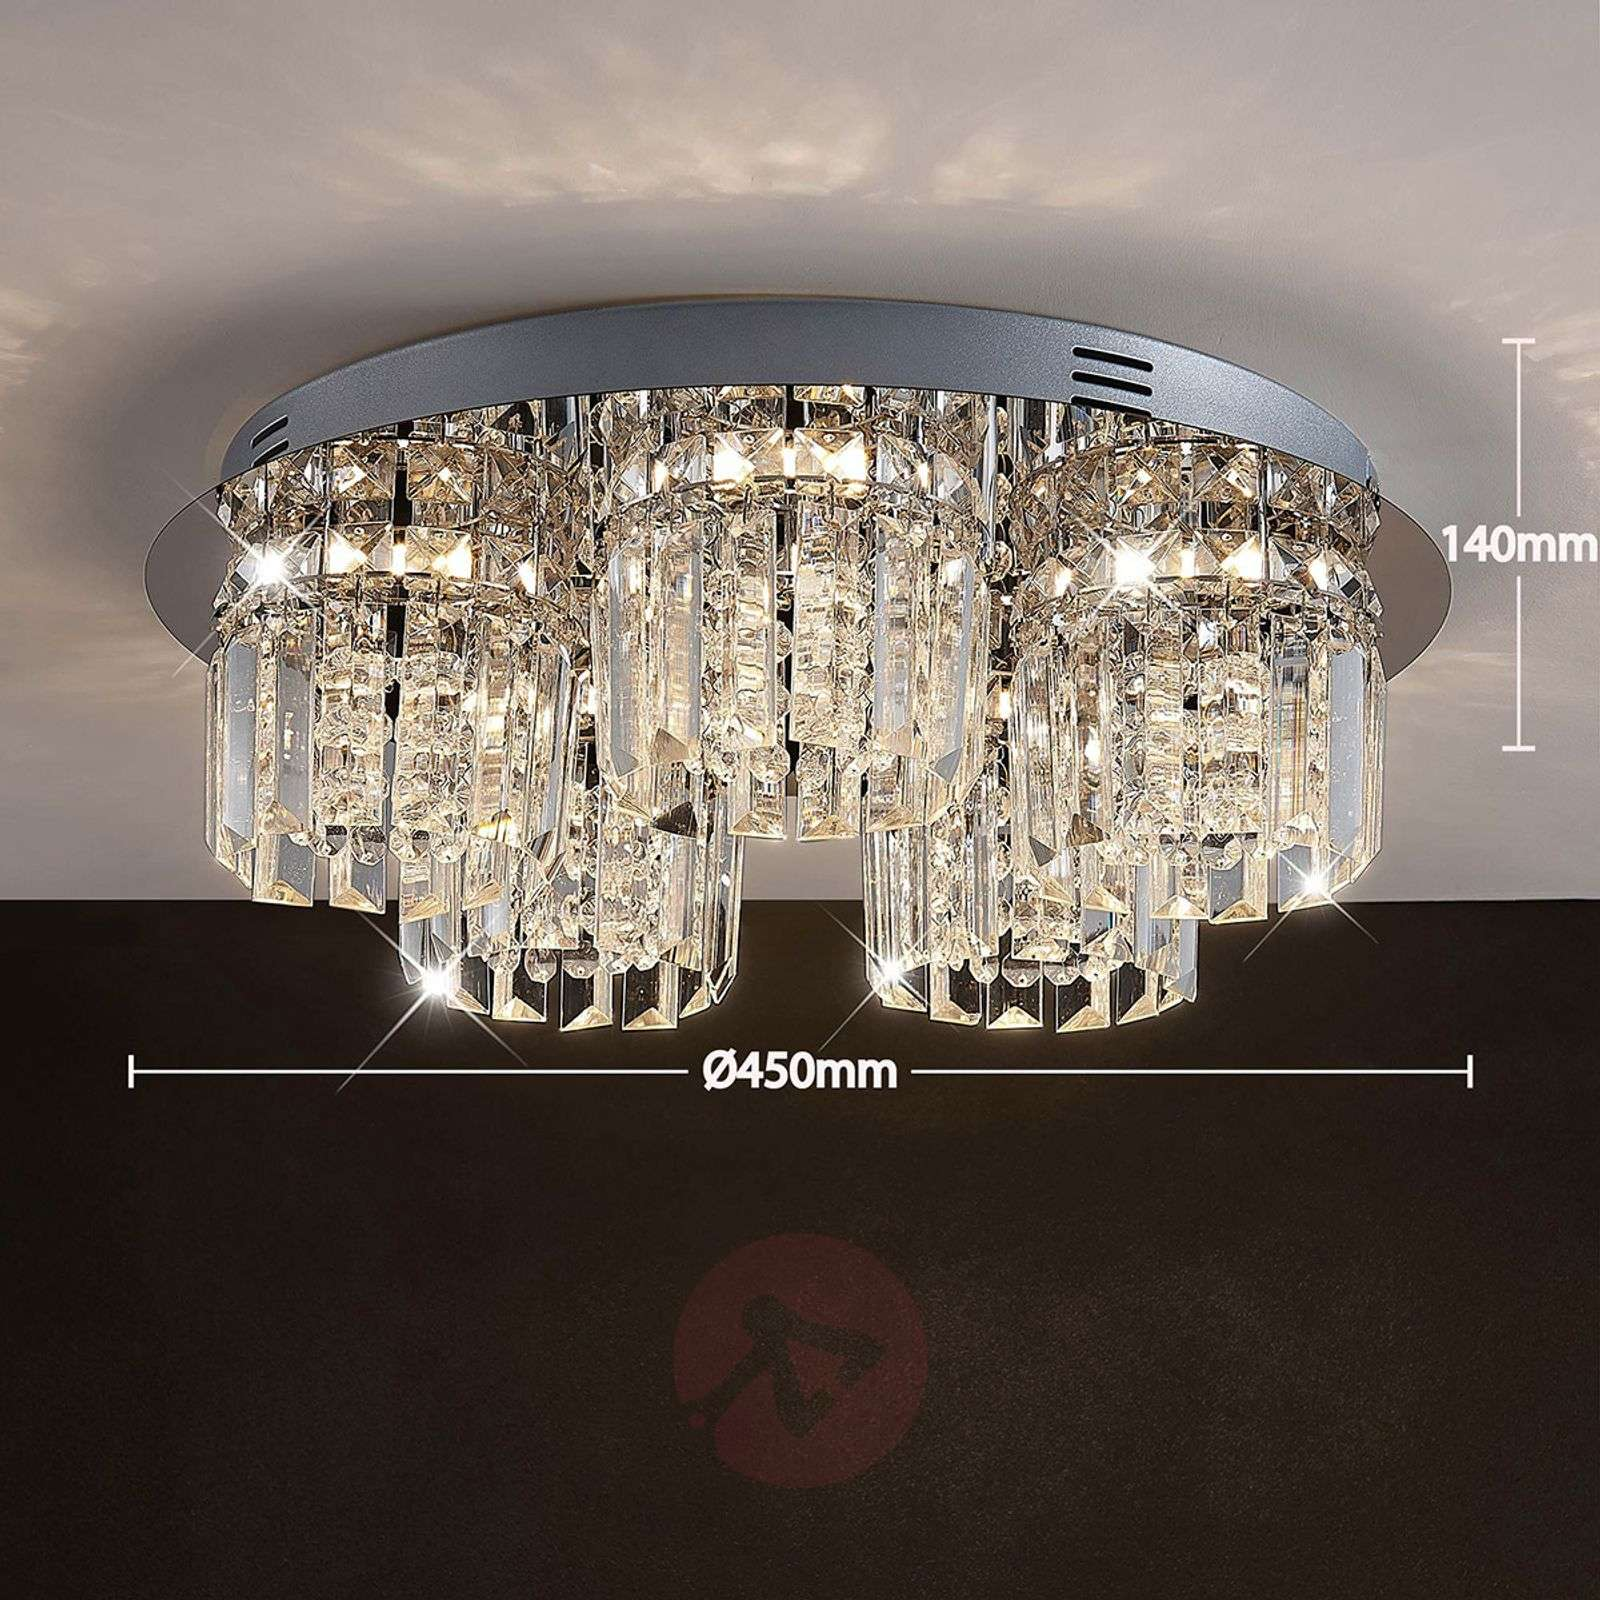 Cristal Shari Plafonnier À 5 LampesDimmable Led bm6yvIYf7g